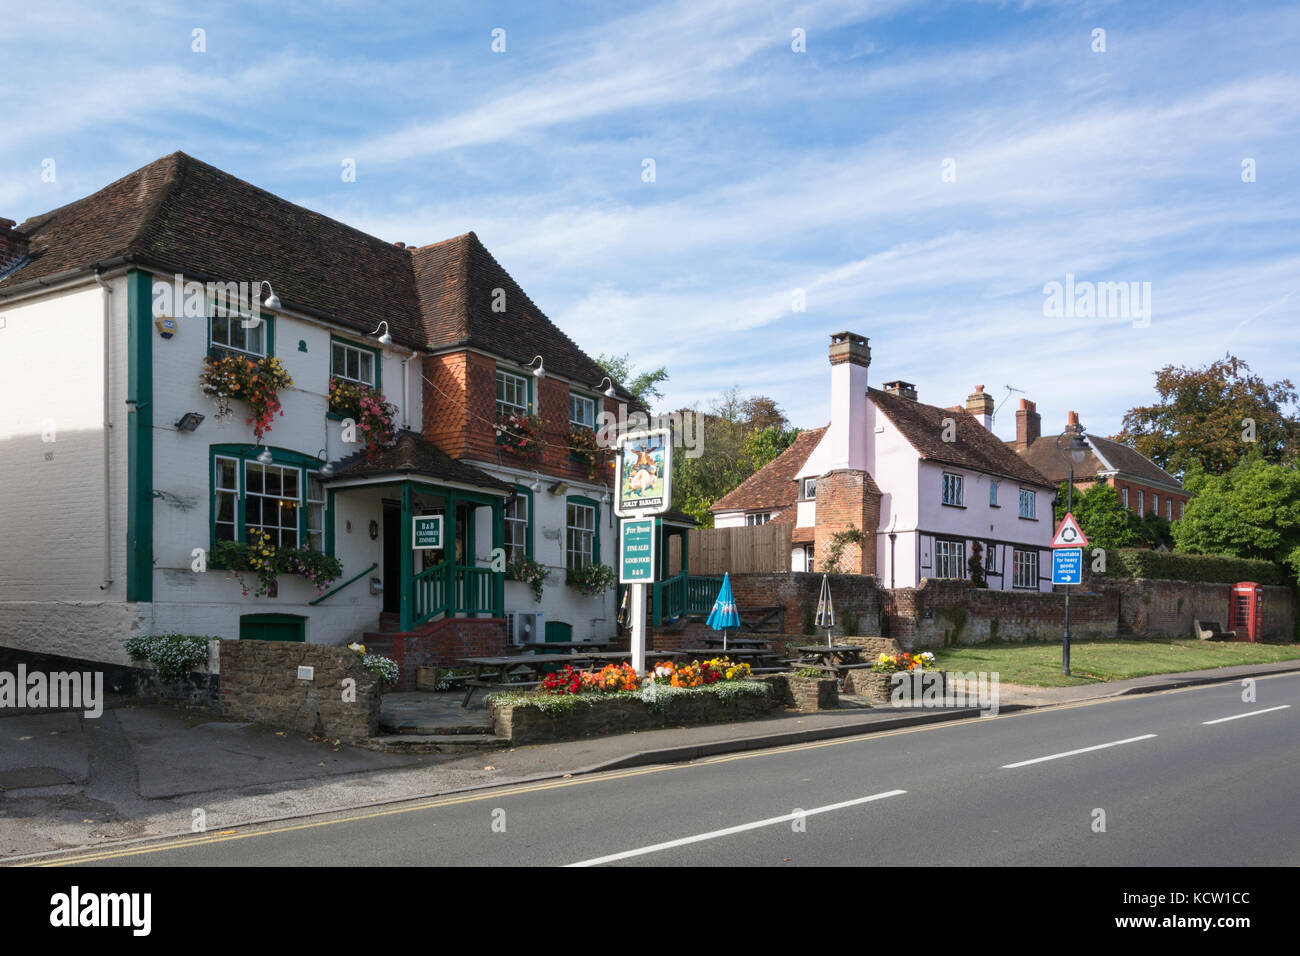 View of the high street and the Jolly Farmer pub in the village of Bramley, Surrey, UK - Stock Image